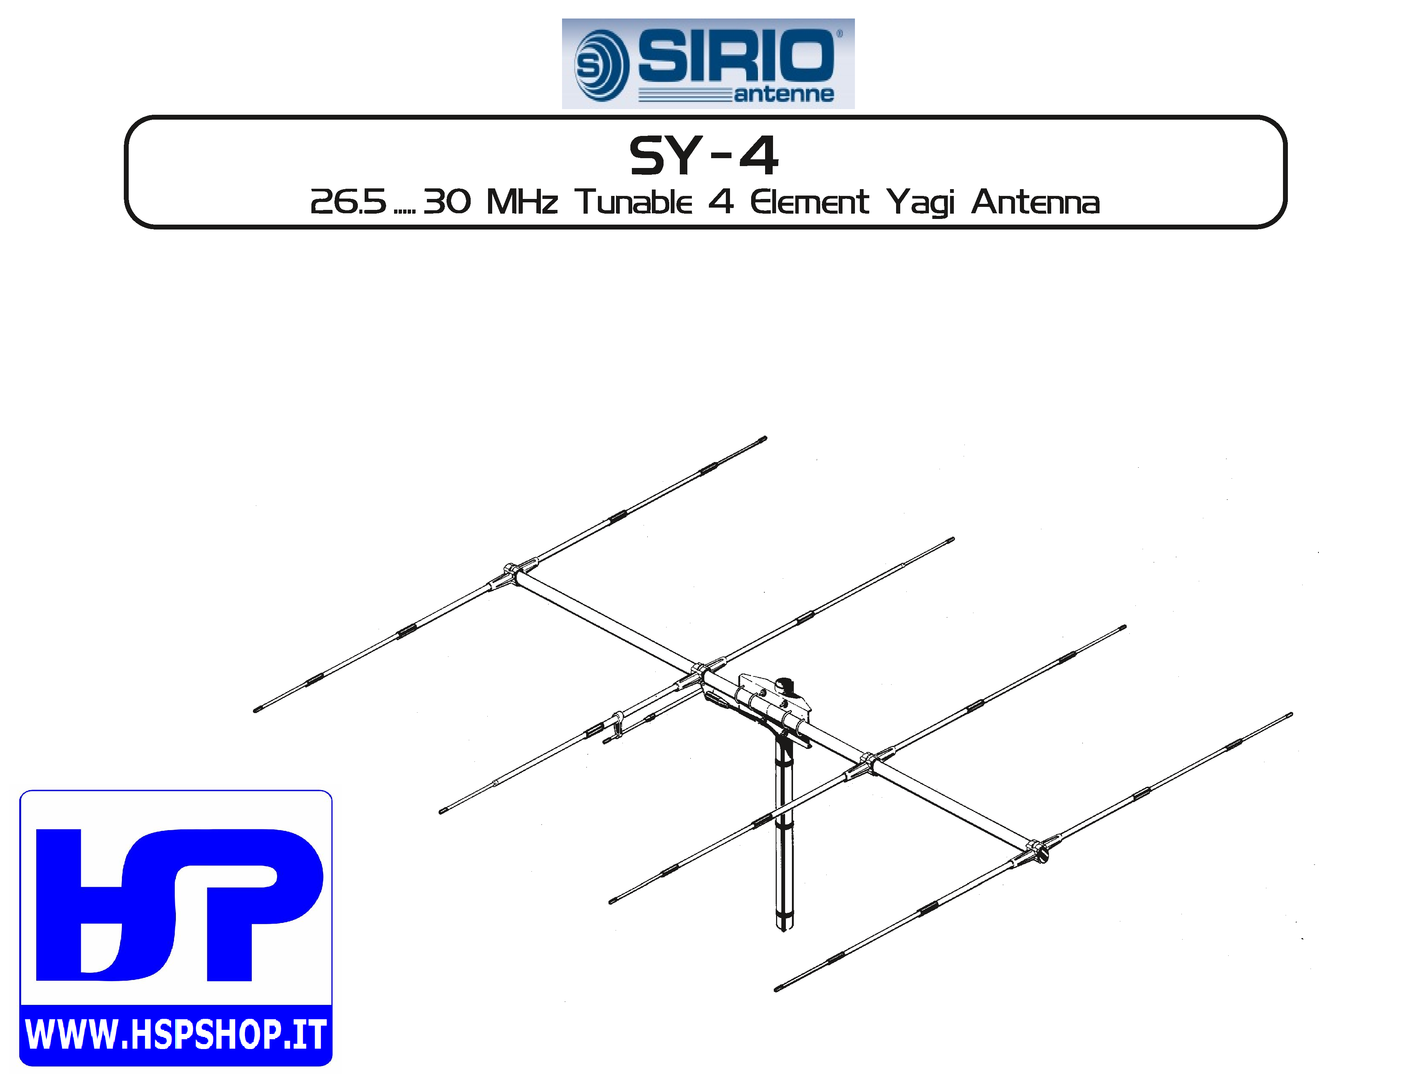 SIRIO - SY-4 - 4 ELEMENT BEAM 26.5-30 MHz